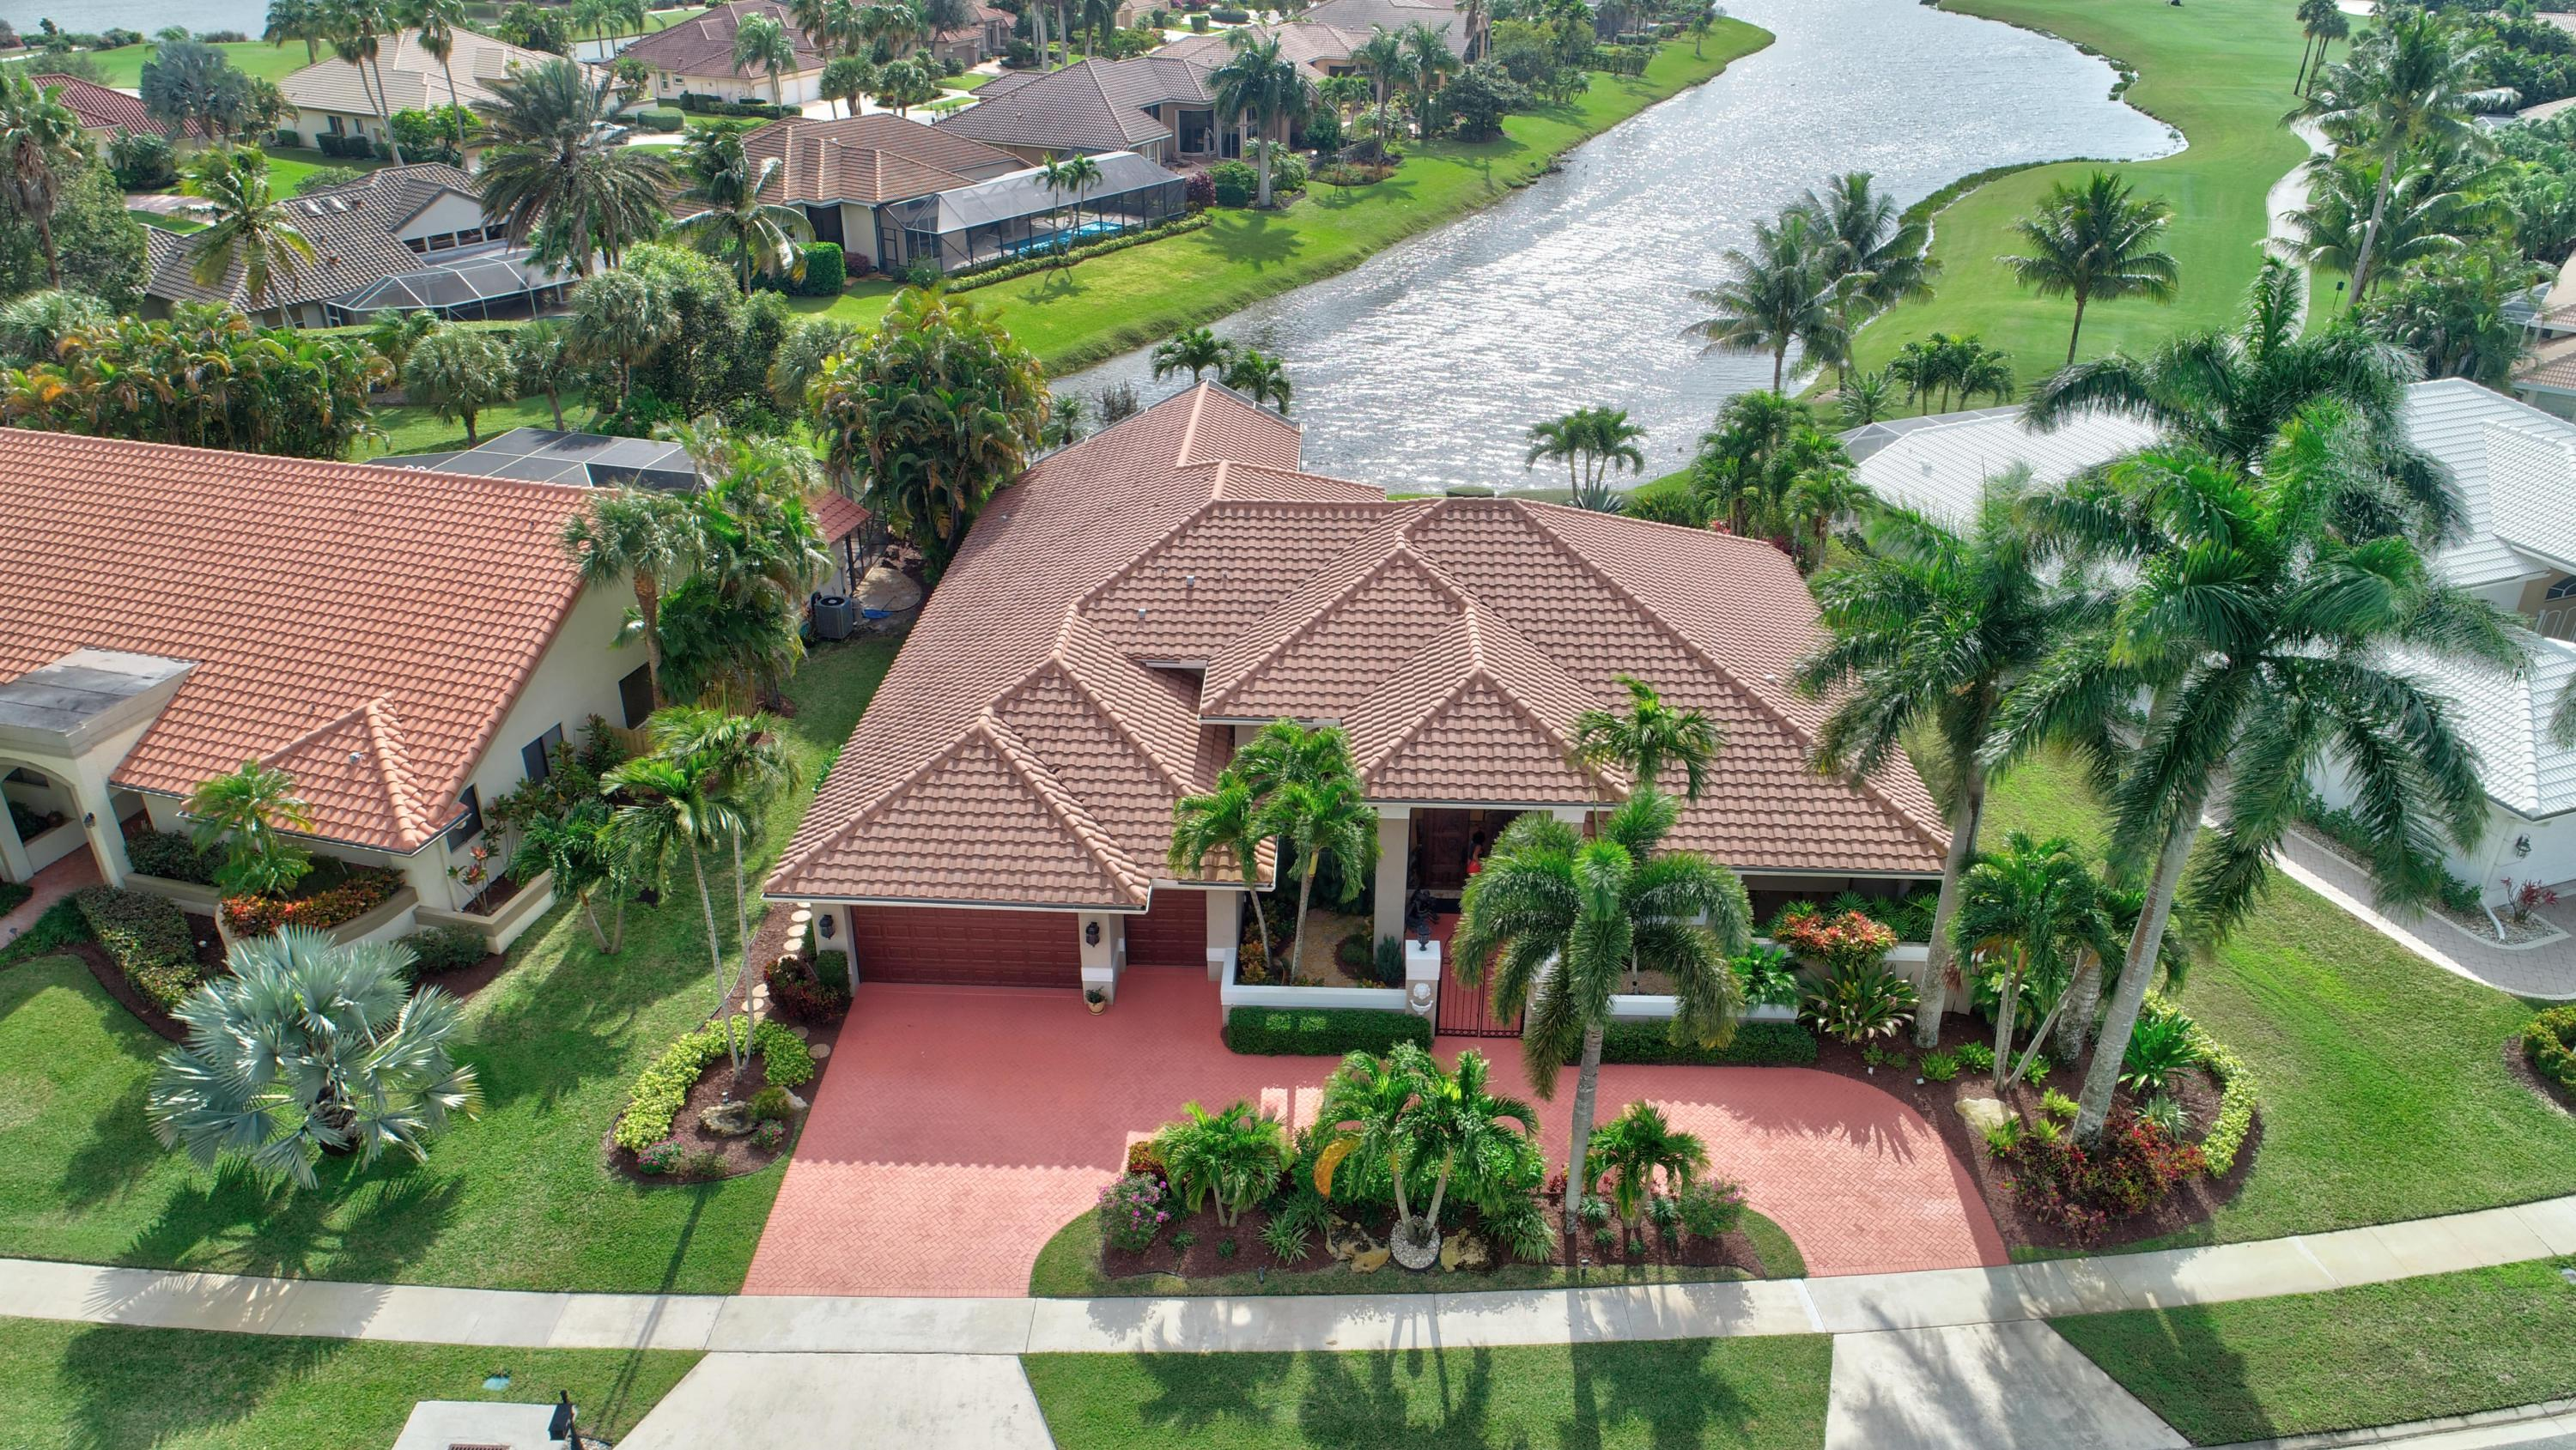 Photo of 10547 Stonebridge Boulevard, Boca Raton, FL 33498